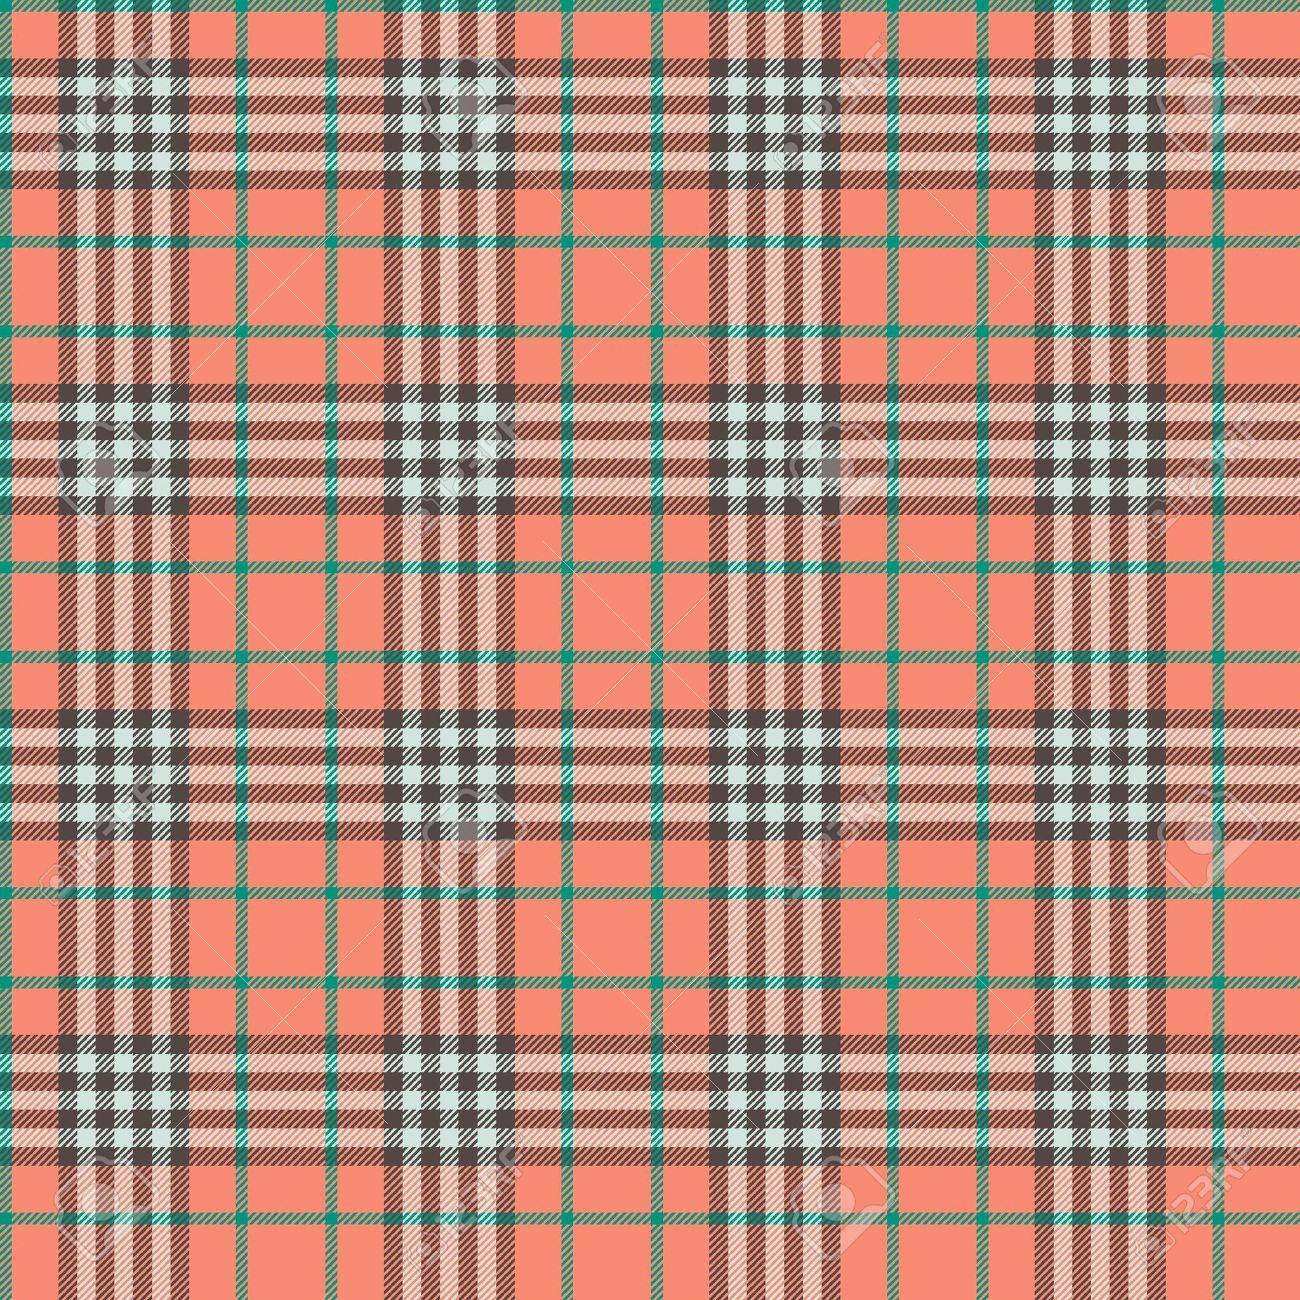 Tartan Pattern seamless tartan pattern royalty free cliparts, vectors, and stock